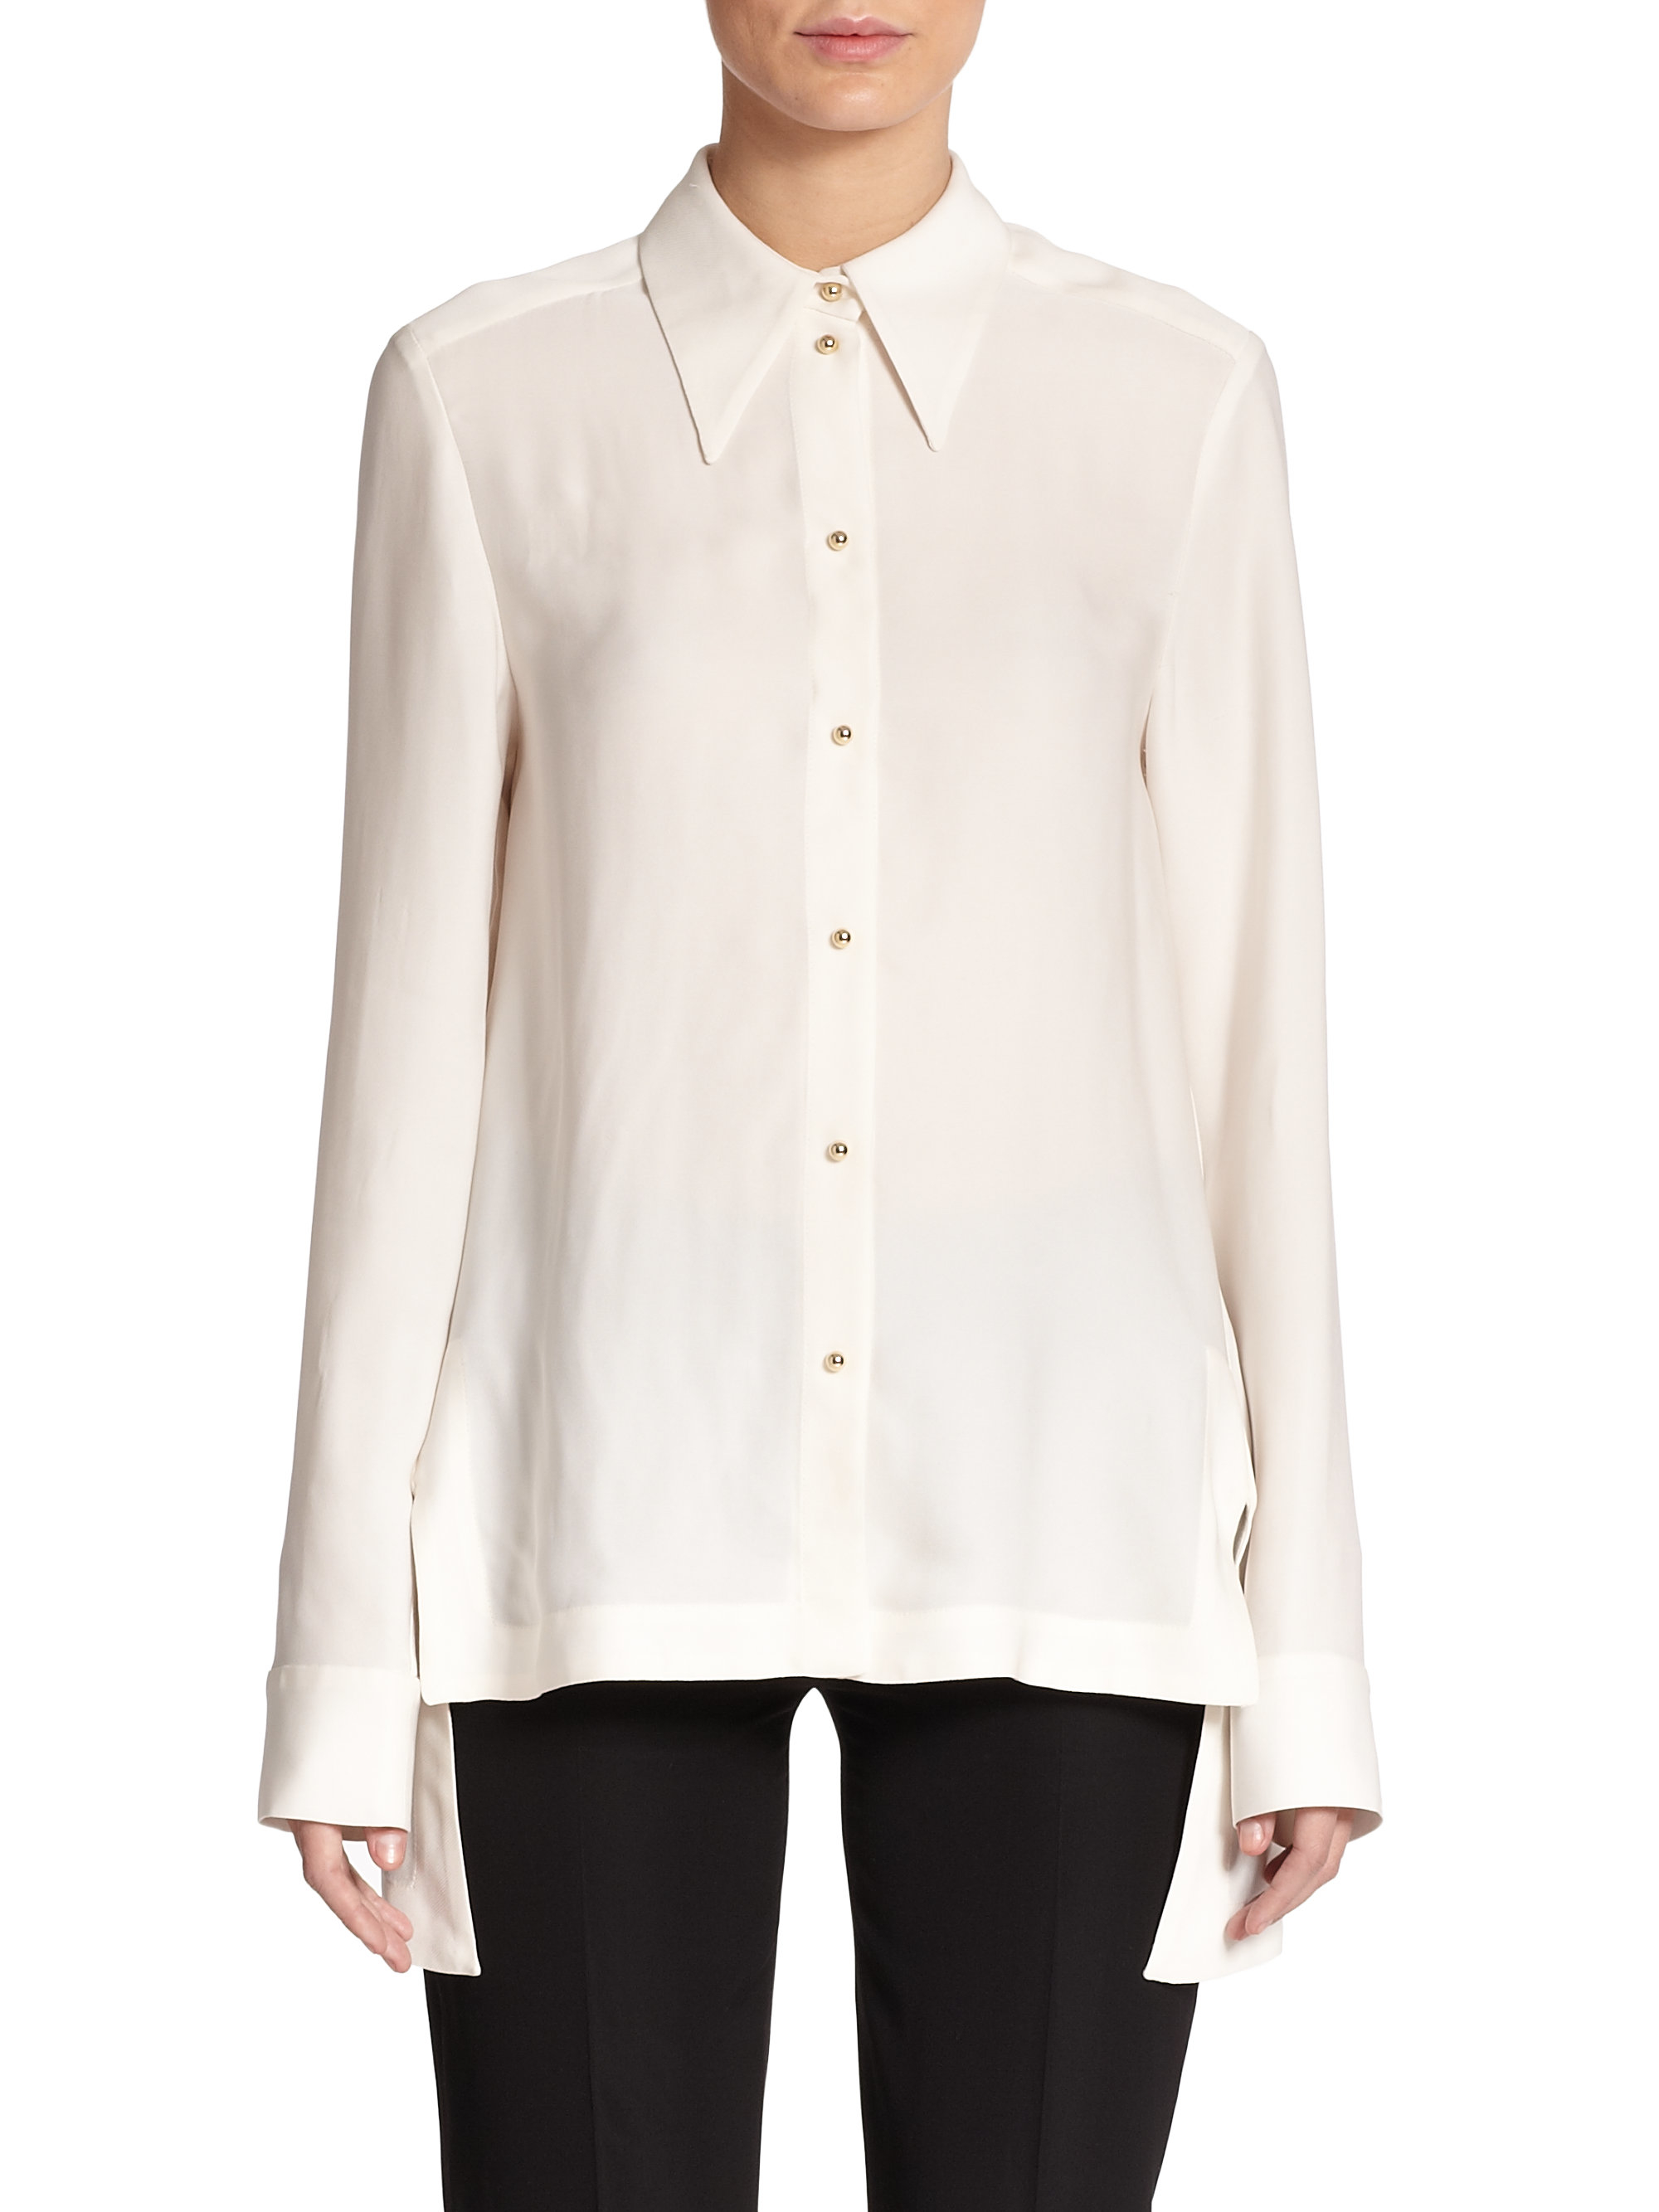 Stella mccartney Jones Gold-button Blouse in White | Lyst